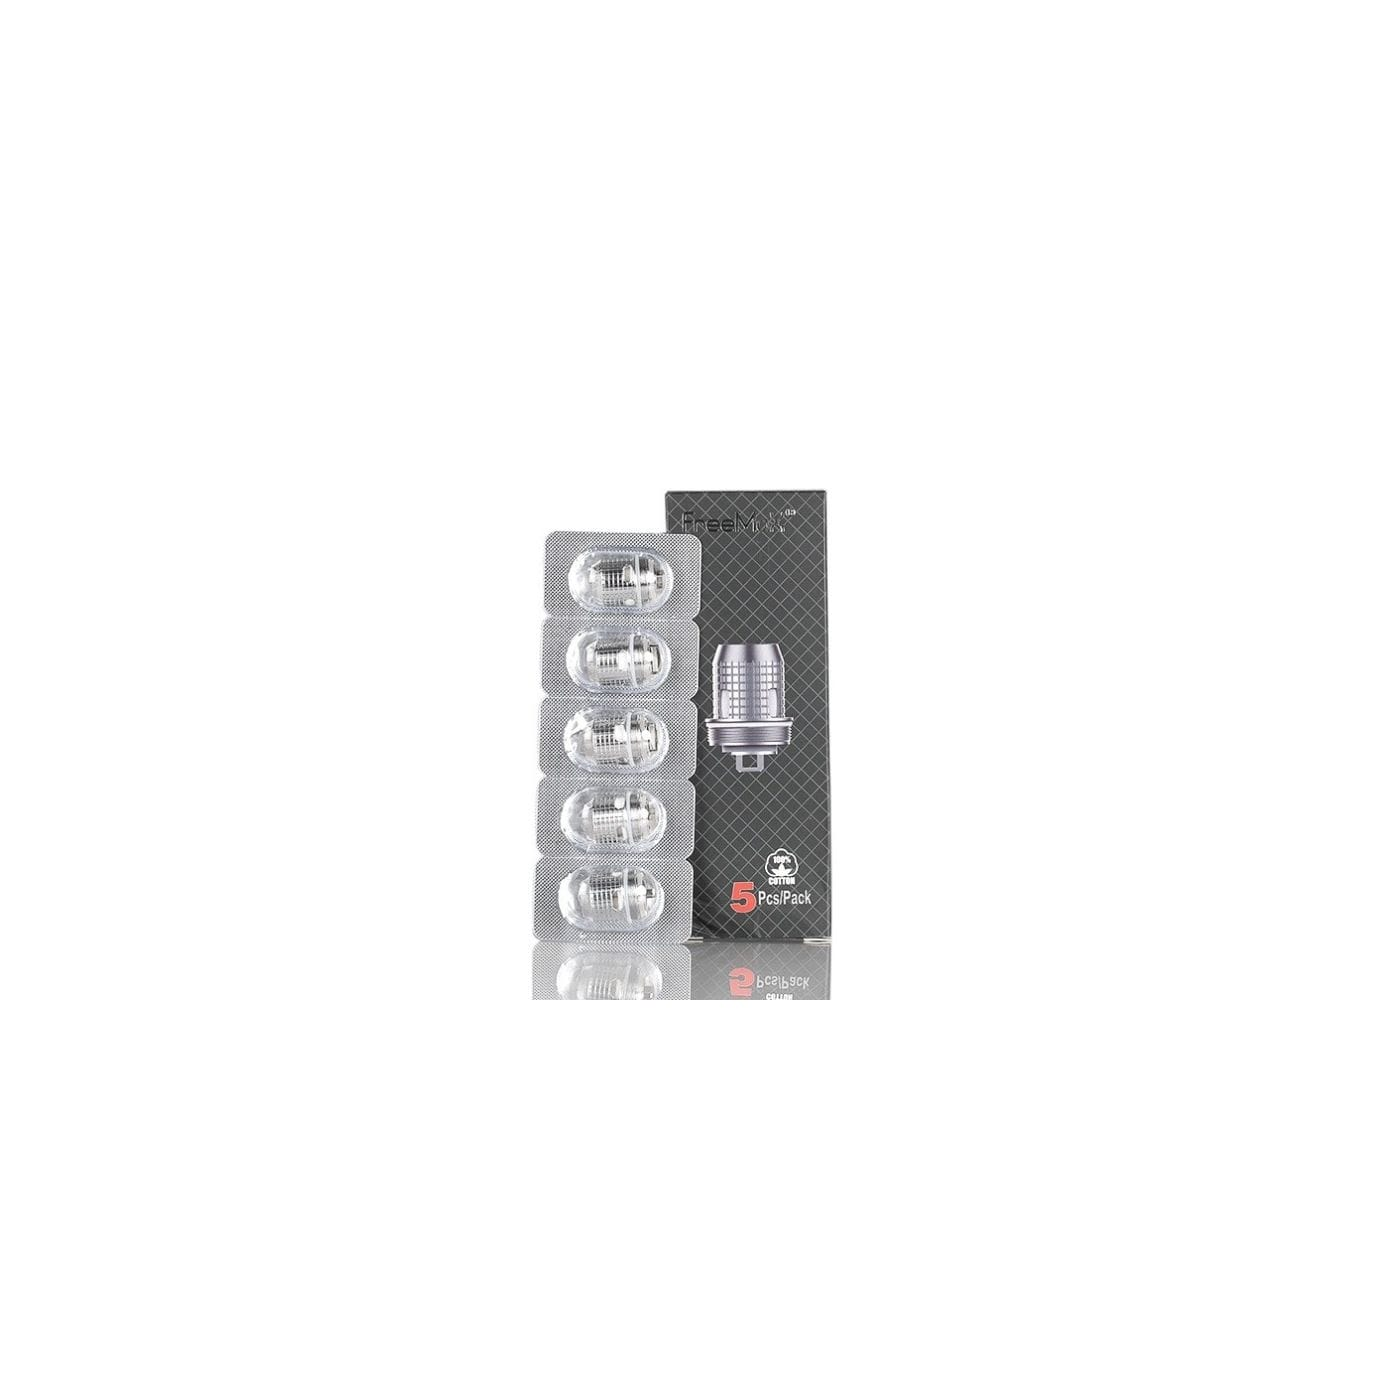 Freemax X4 Mesh Replacement Coil - 5 pack